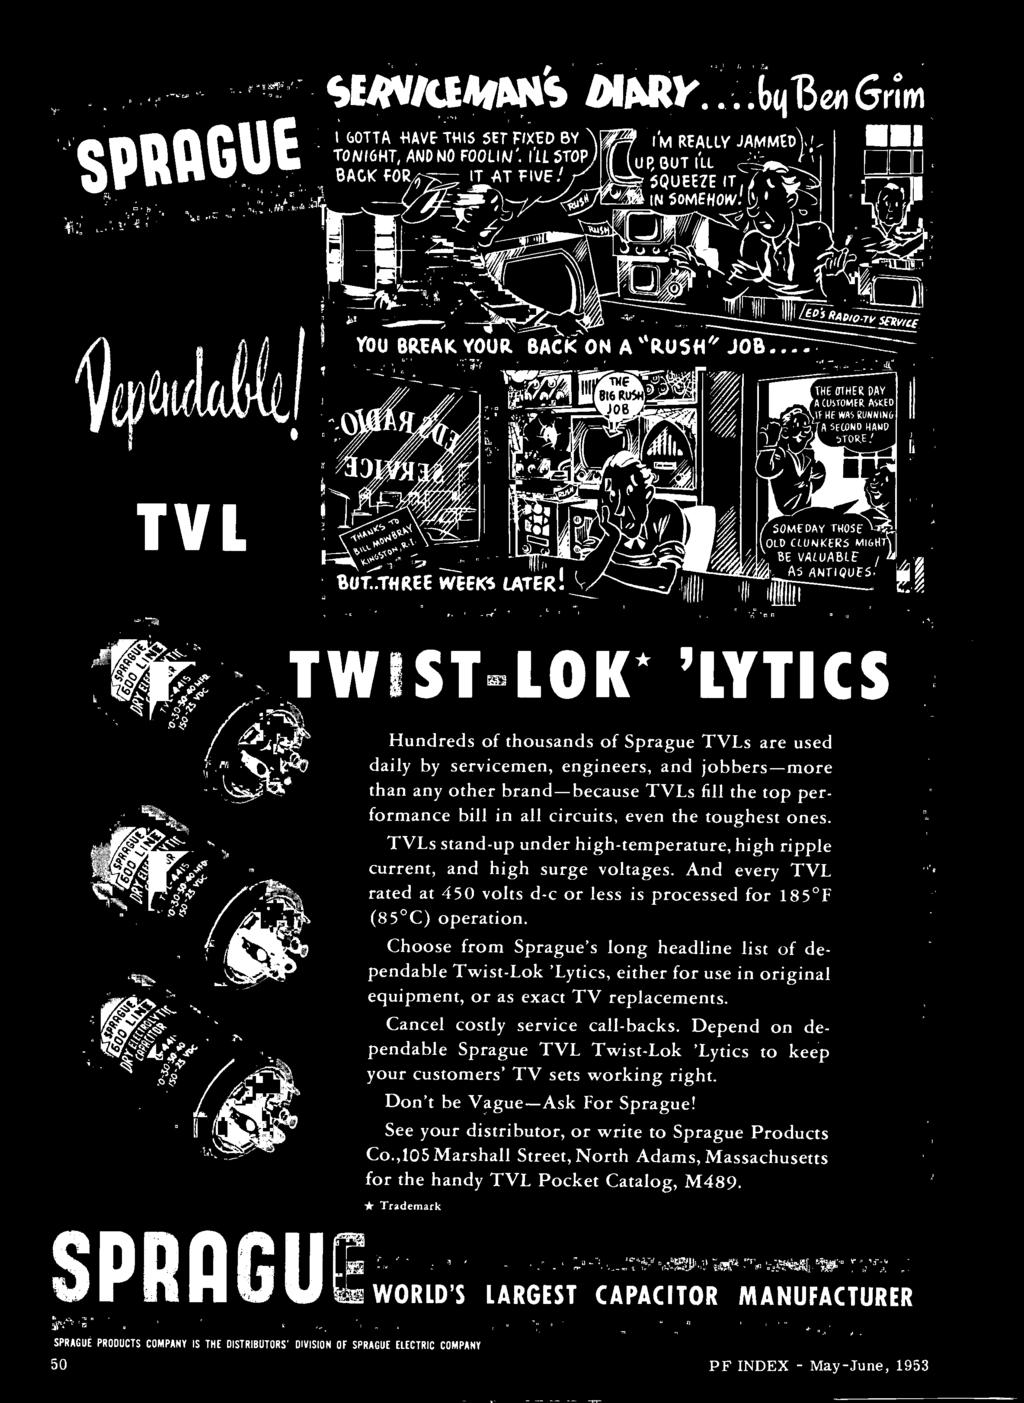 Choose from Sprague's long headline list of dependable Twist-Lok 'Lytics, either for use in original equipment, or as exact TV replacements. Cancel costly service call-backs.